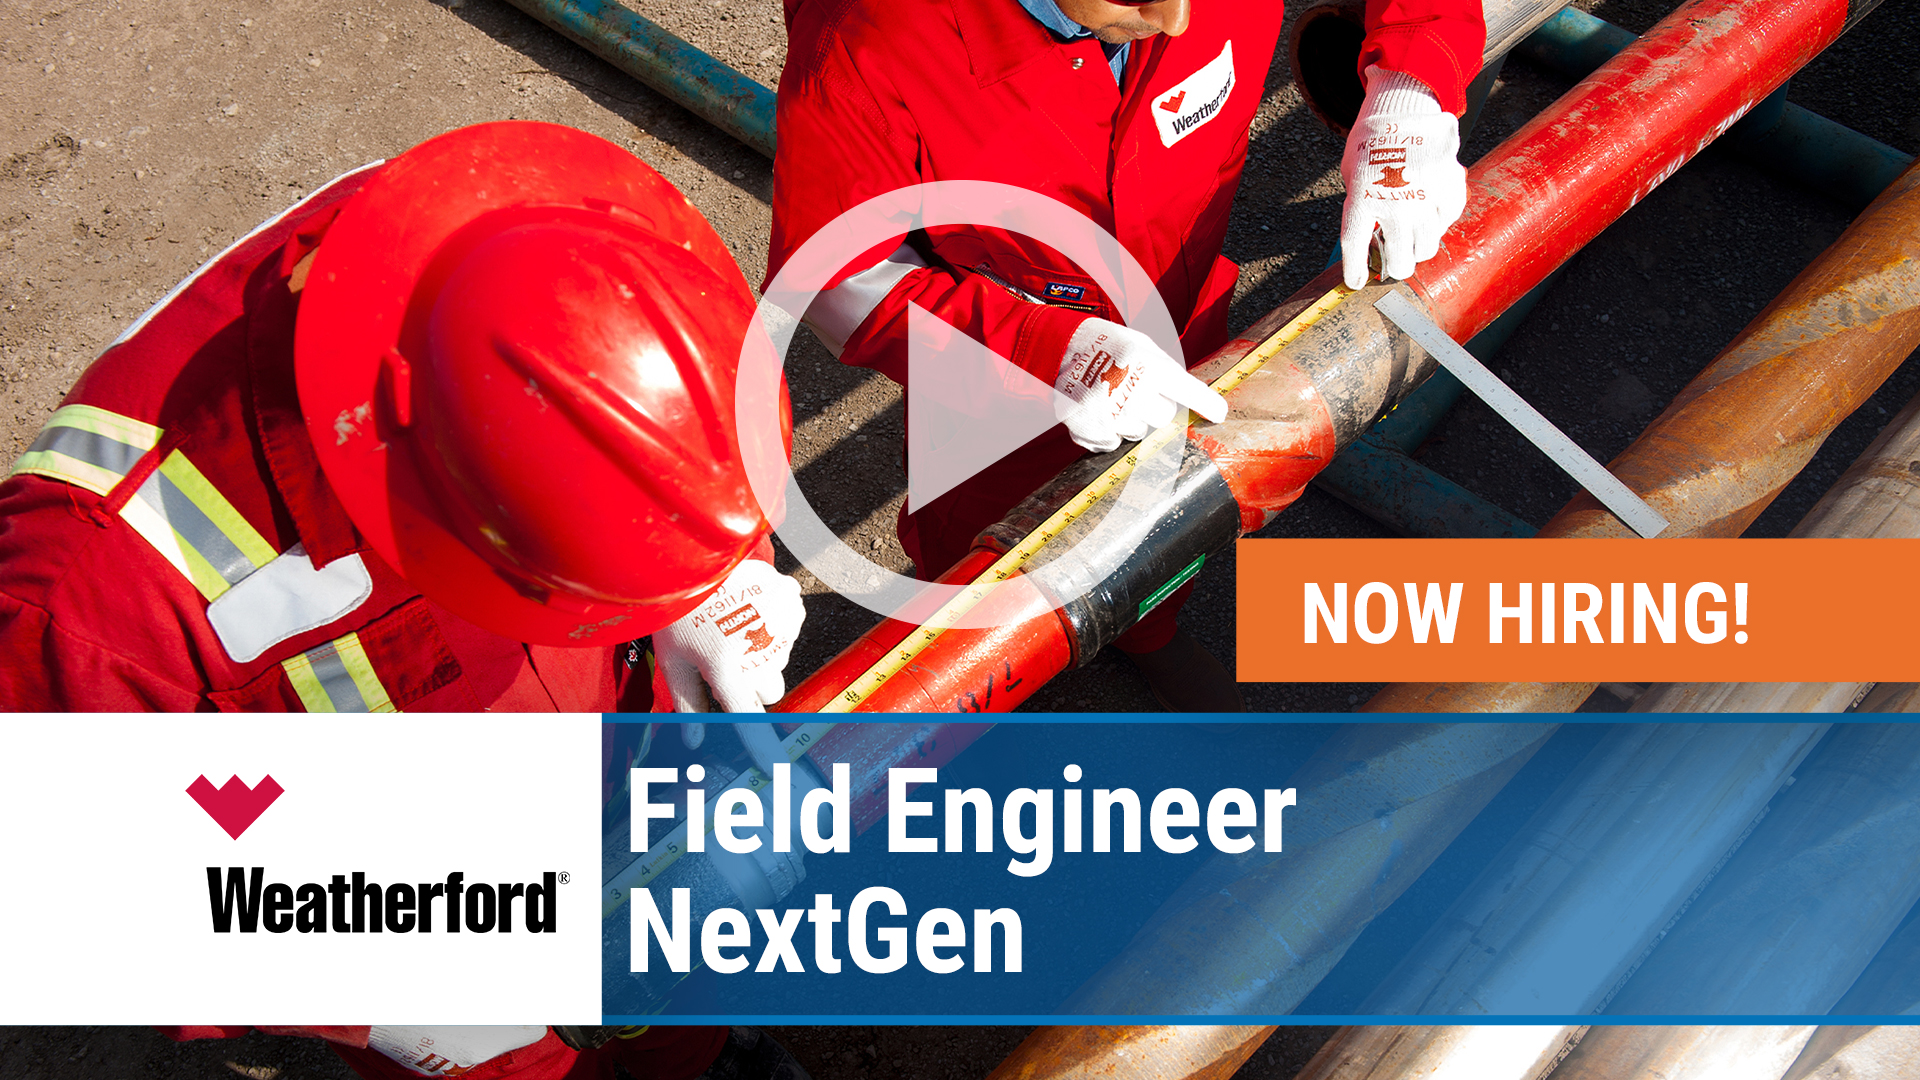 Watch our careers video for available job opening Field Engineer - NextGen in Houston, TX